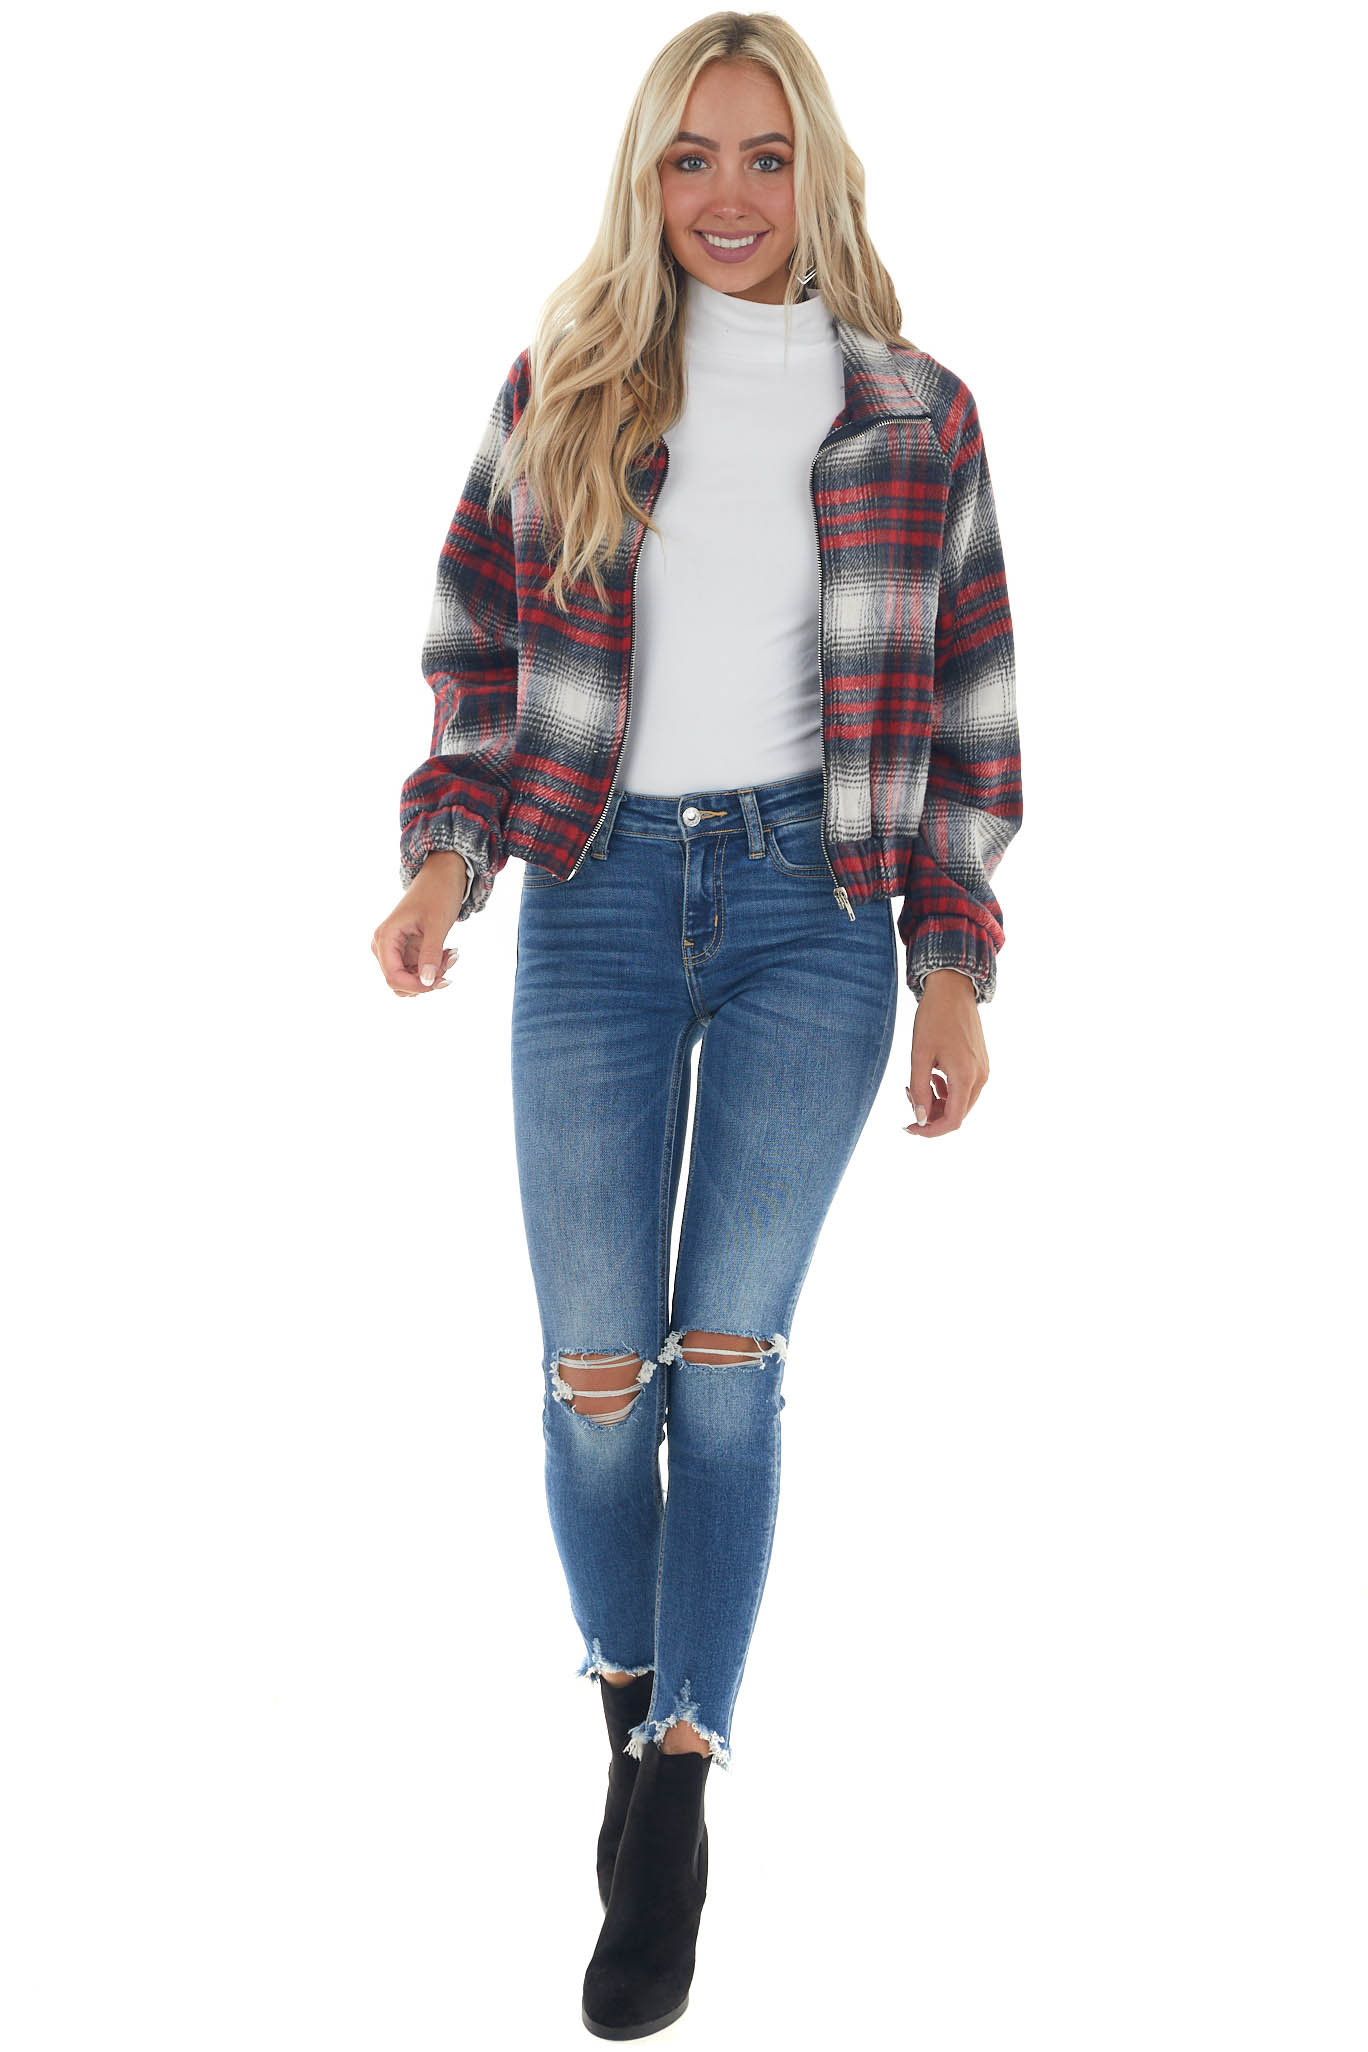 Cranberry Plaid Zip Up Jacket with Pockets